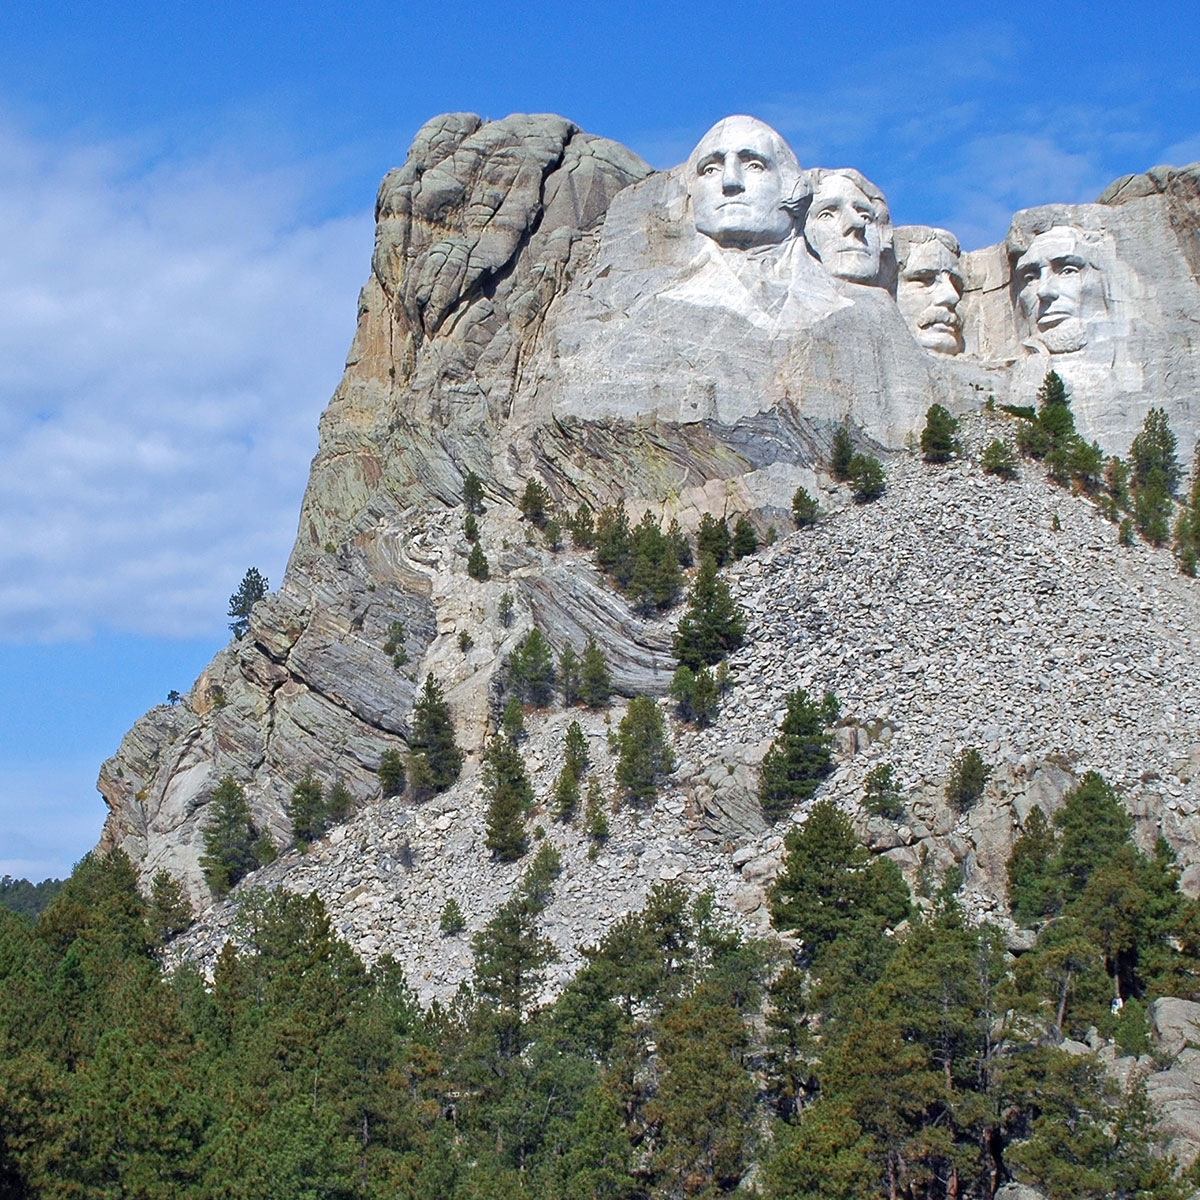 Last Man Who Worked on the Construction of Mount Rushmore Dies at 98